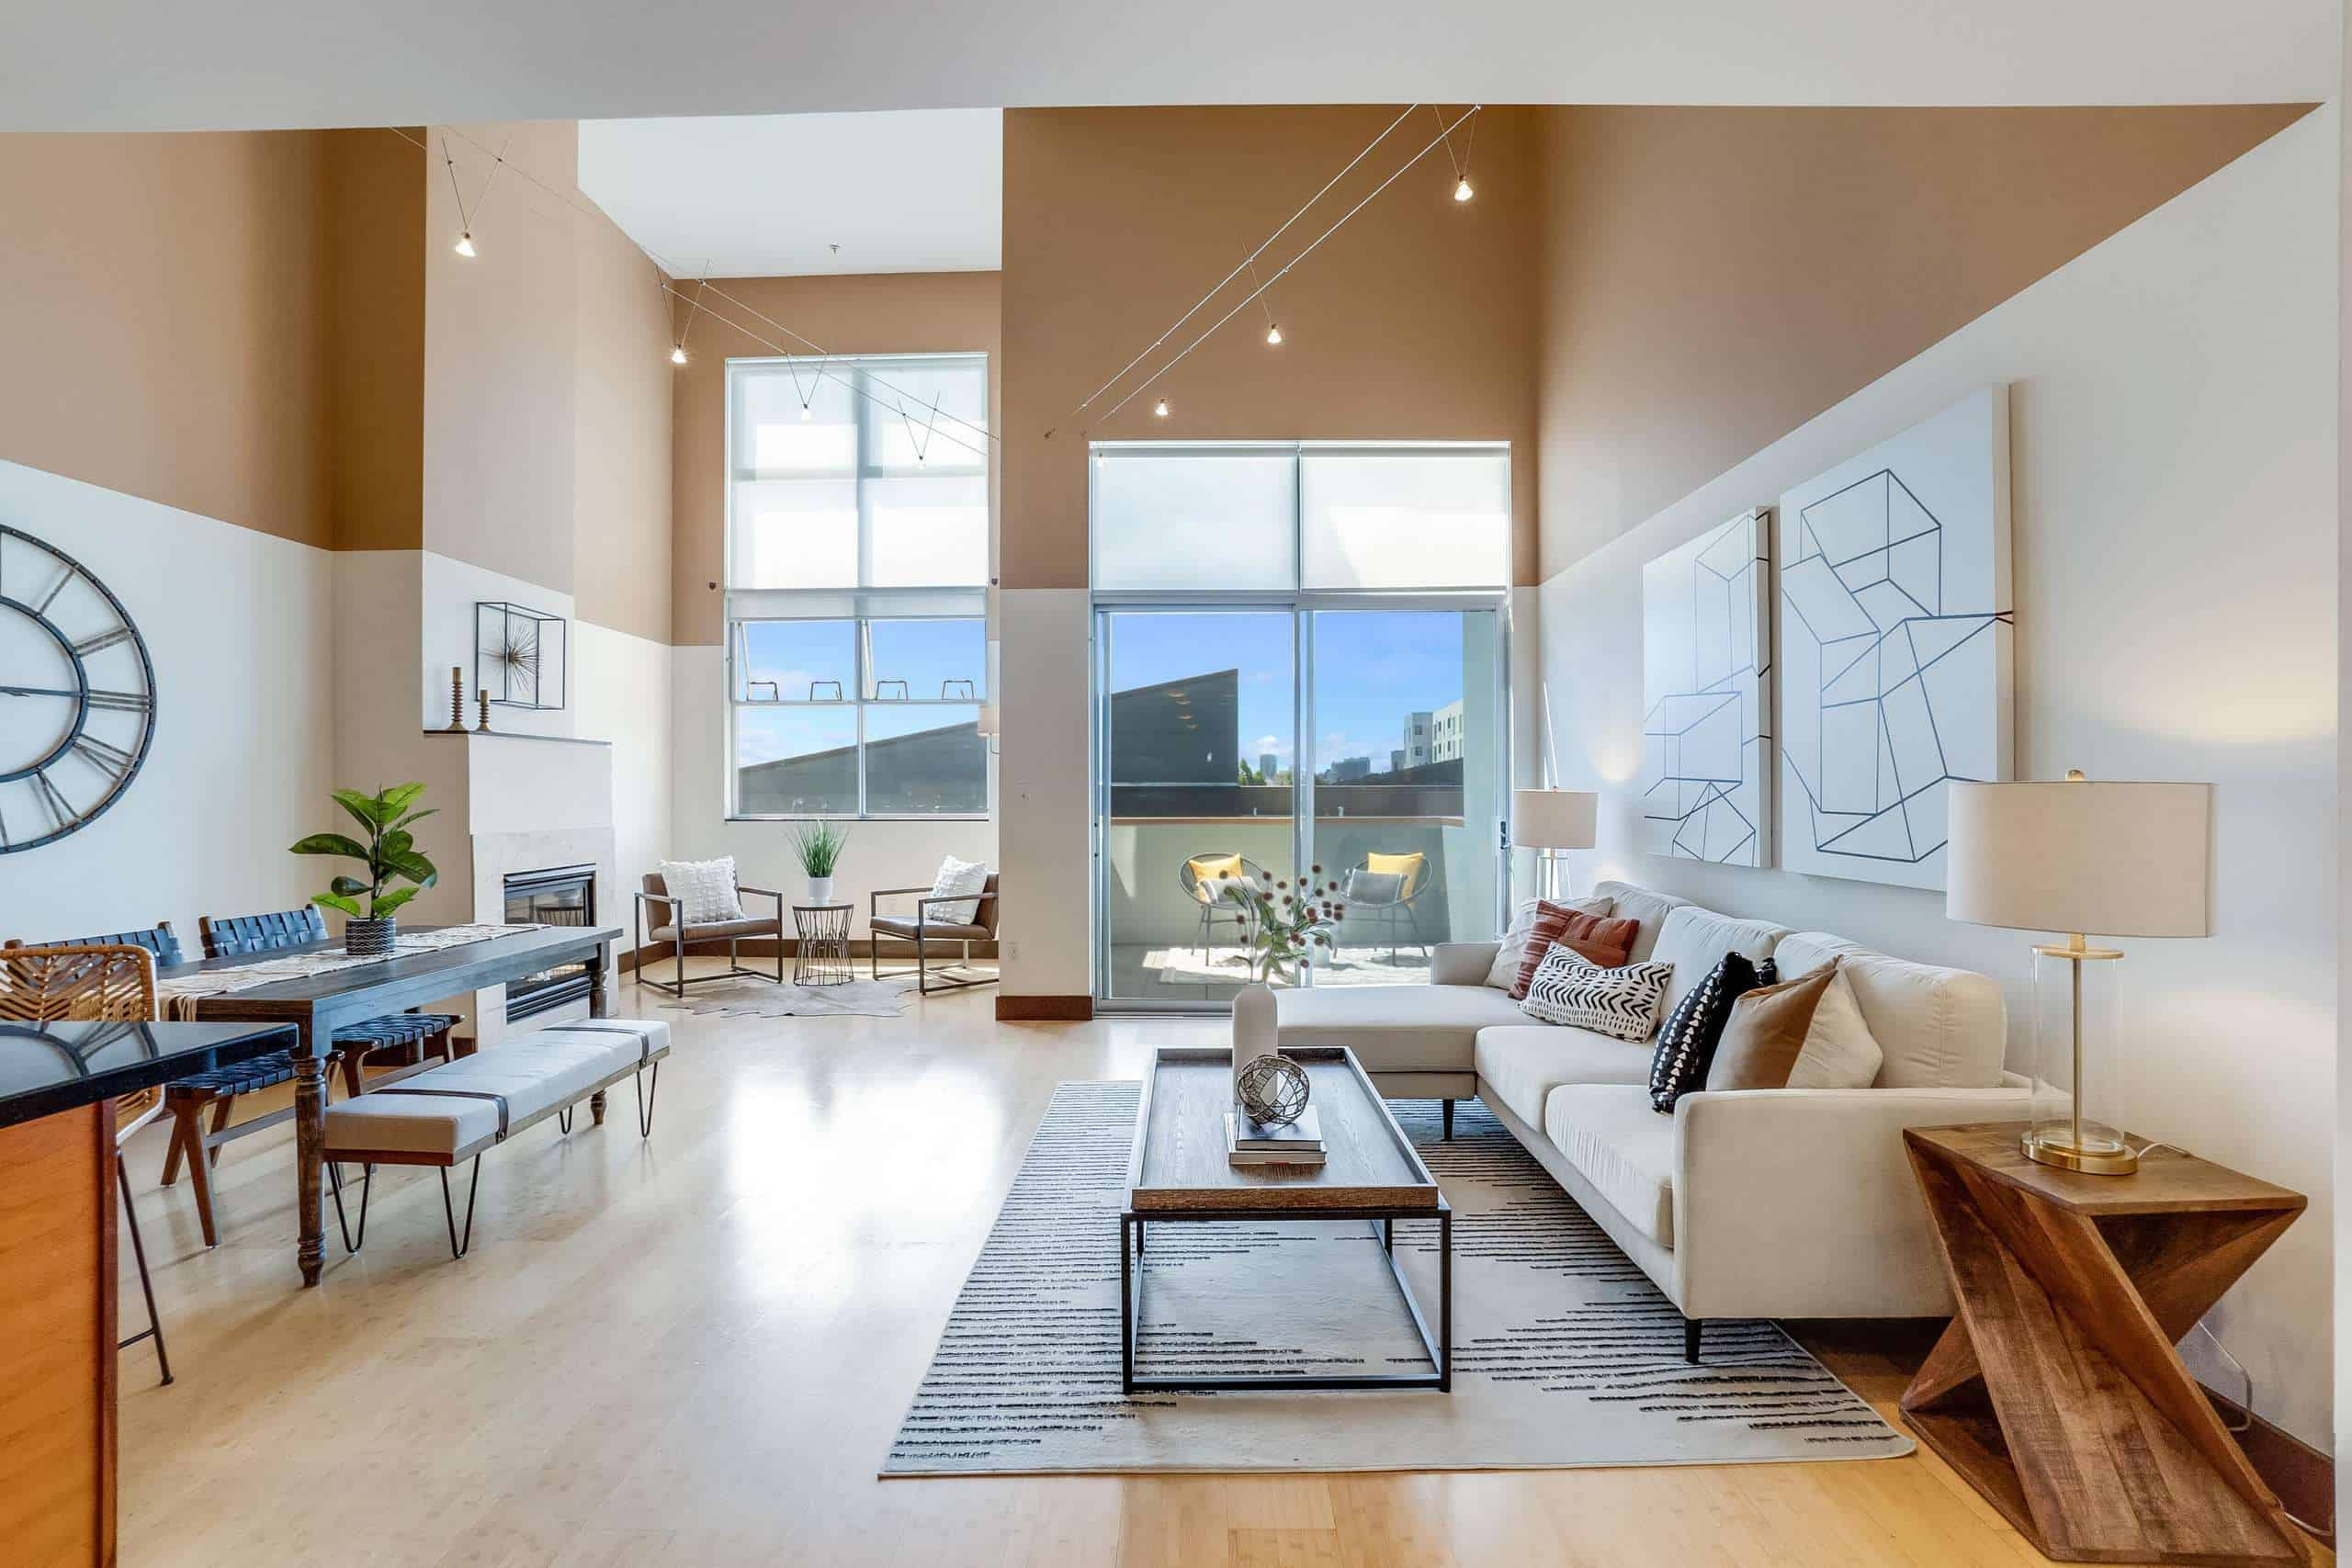 5 Things To Consider Before Buying A Condo In The Bay Area